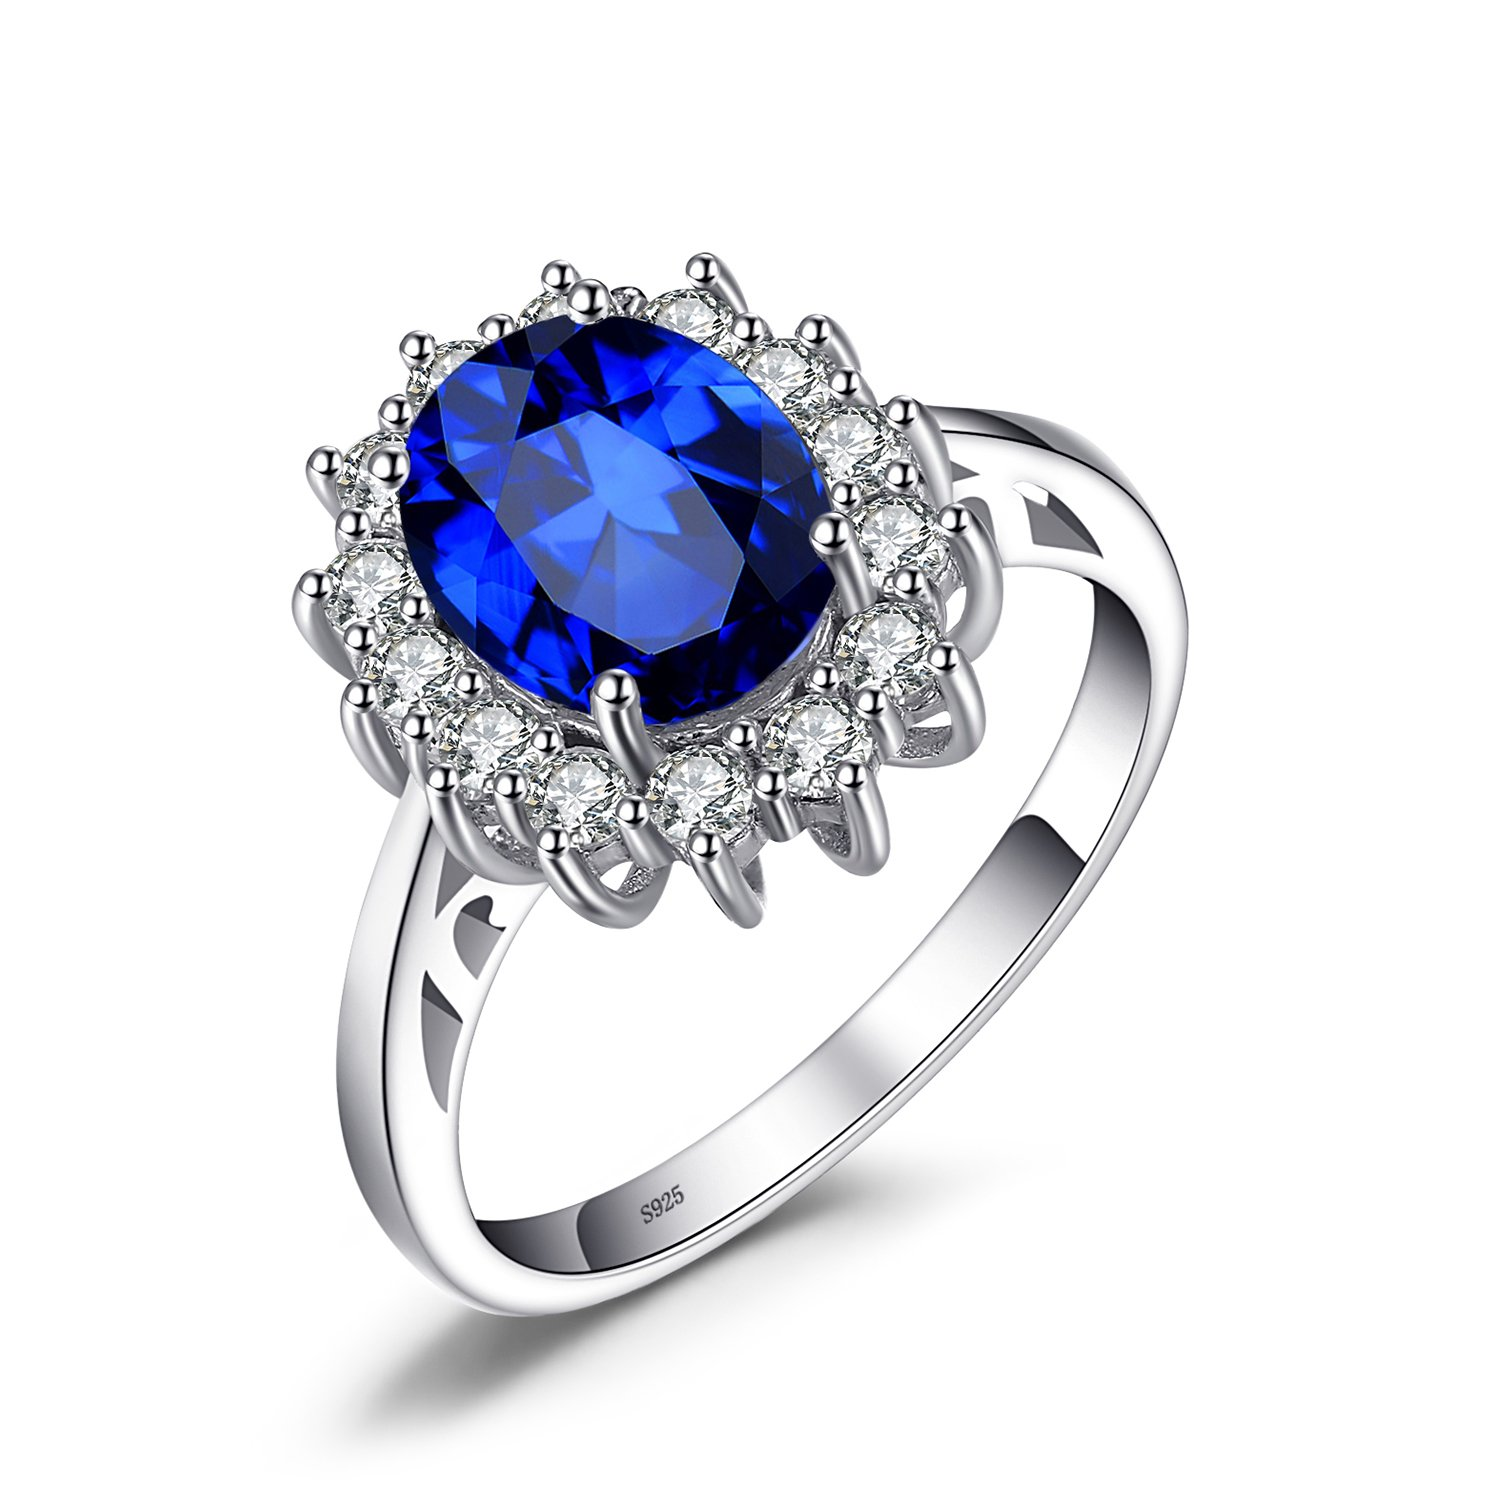 sapphire rings venice rose rad bijoux gold saffire blue product ring